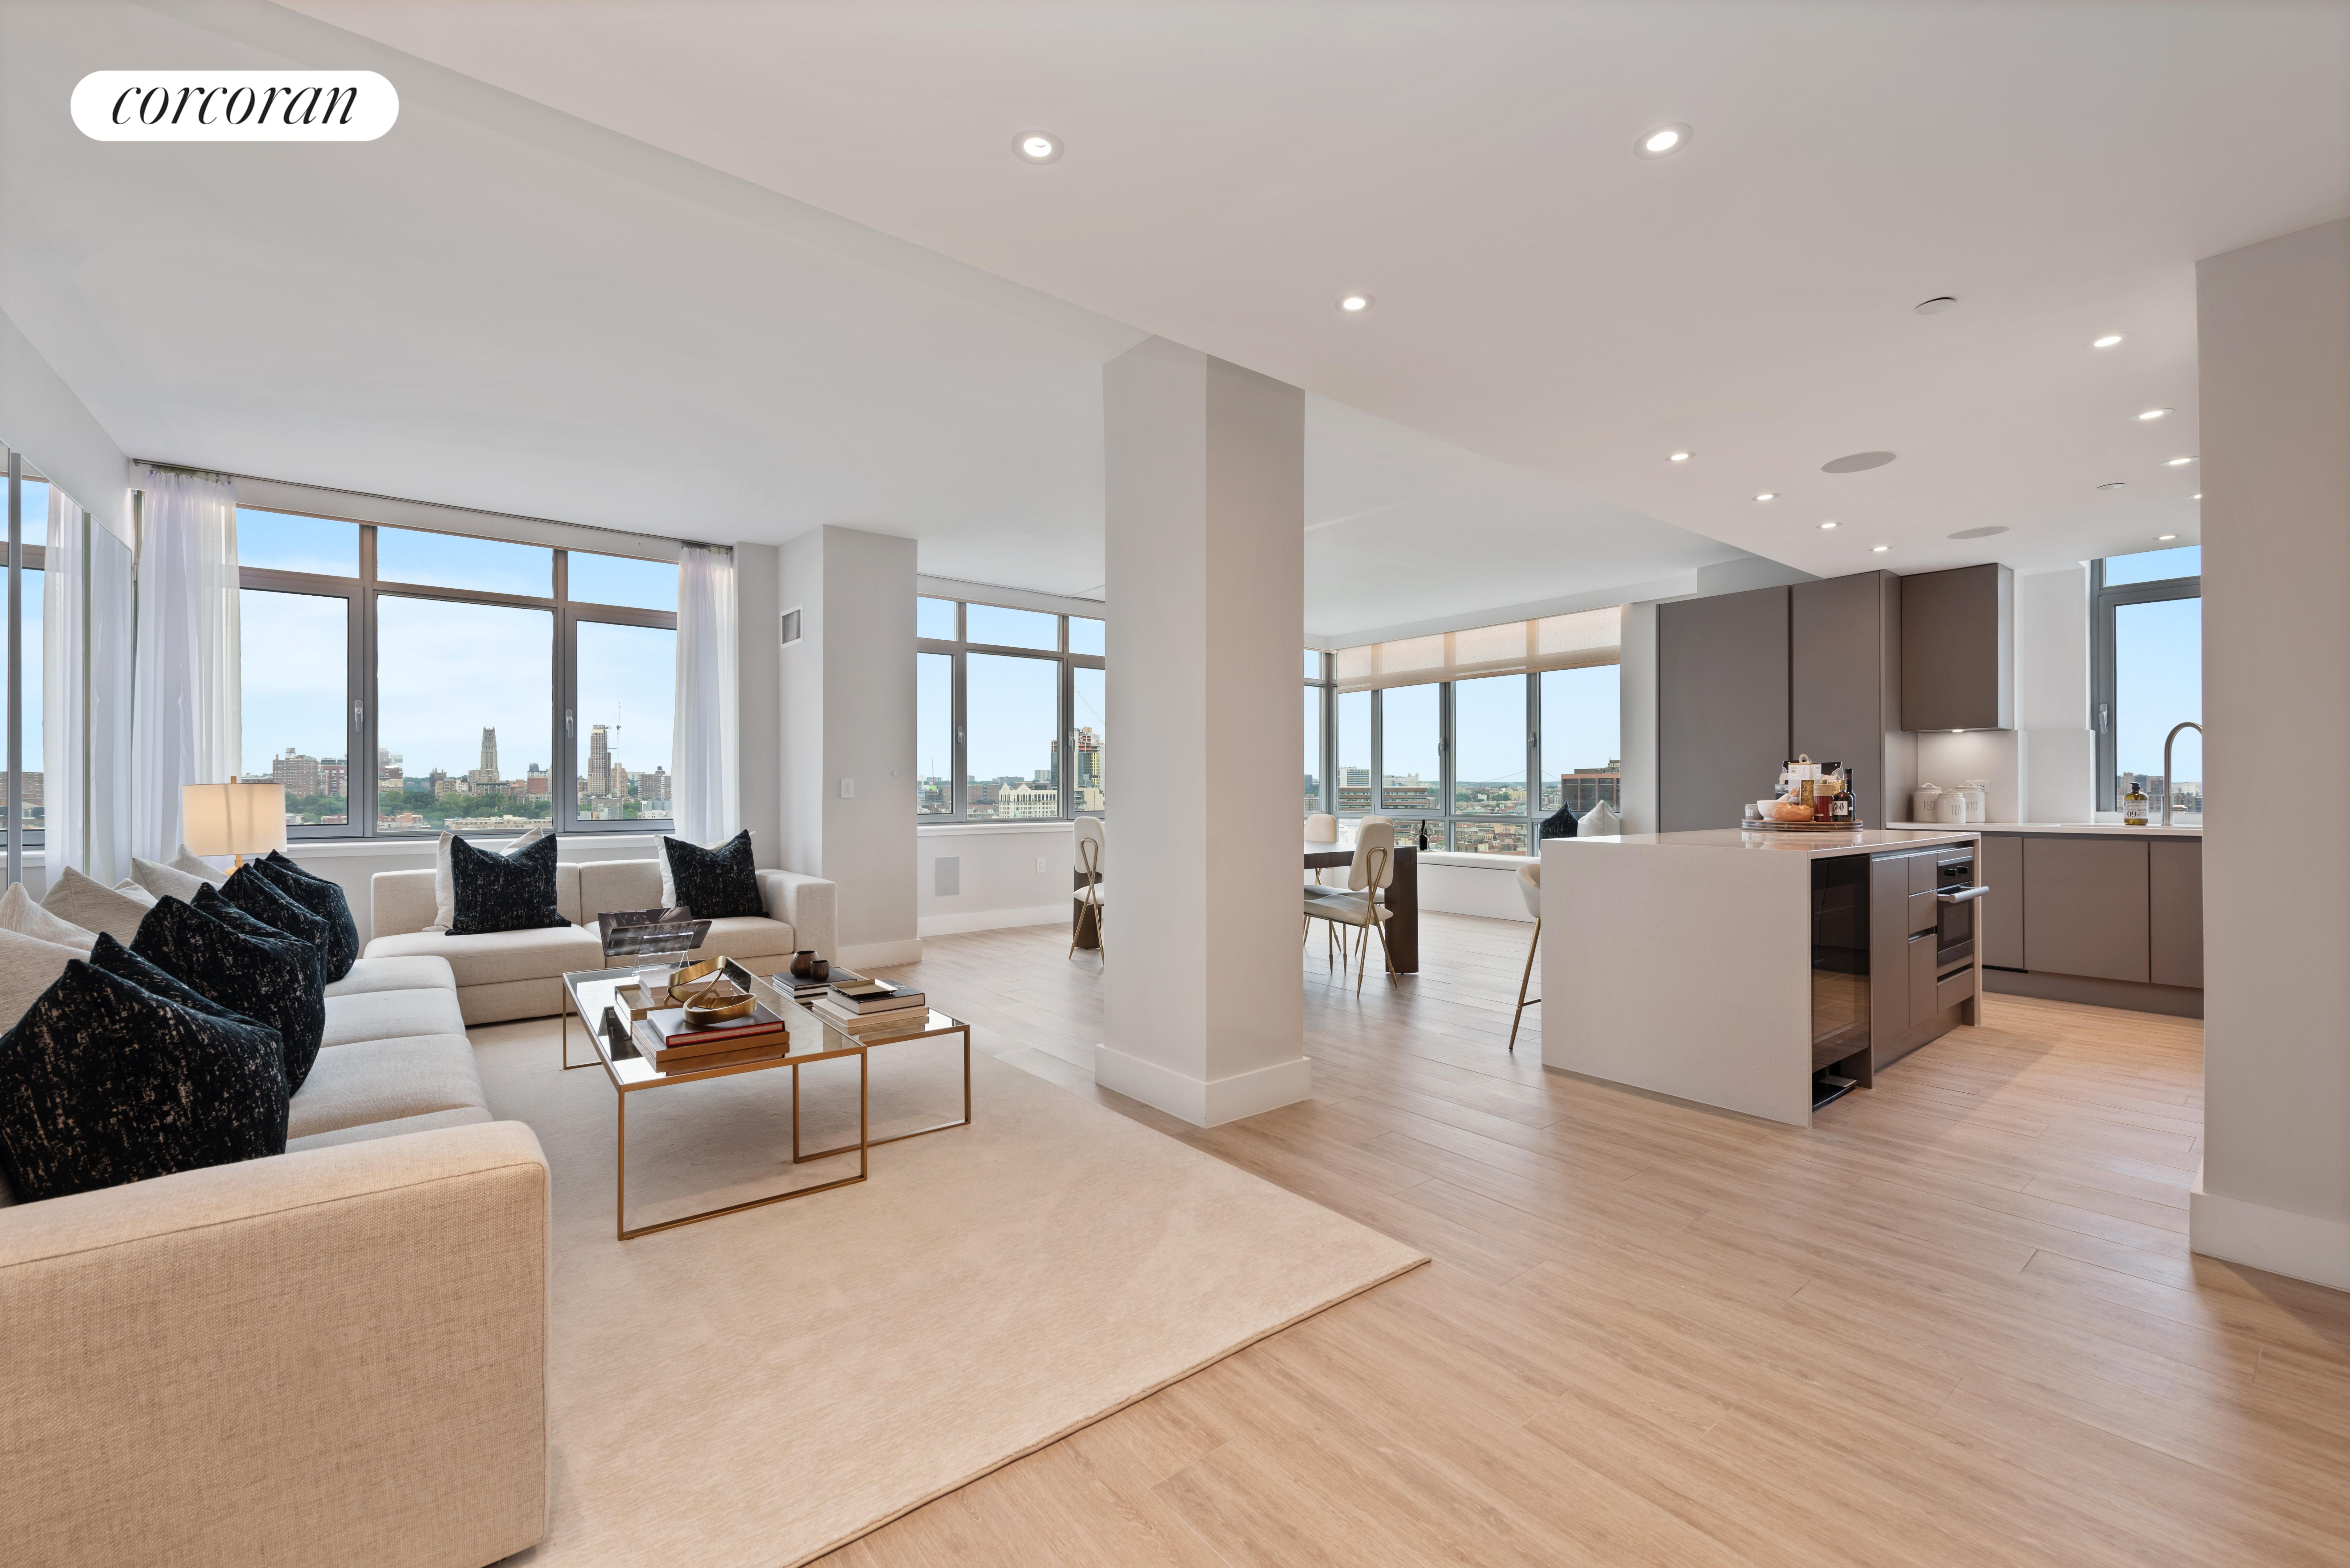 Welcome to this truly unique 5 bedroom luxury residence on Fifth Ave with beautiful Park Views in the most magnificent condominium in East Harlem. This home is totally gut renovated with utmost attention to details, highest quality materials and never lived-in. All rooms in the apartment have unobstructed views of Marcus Garvey Park. Upon entering, you are amazed by an elegant and expansive corner great room with three sections, large living room, 12 seat dining room, and a corner sitting area allowing you to enjoy the most splendid sunset. The modern windowed chefs kitchen is equipped with miele appliances, separate refrigerator and freezer, wine cooler, large stove, convection oven, wide sink, quartzite center-island and counter tops, glass-paneled cabinetry and a generous pantry. The master suite boasts a spacious bedroom with sitting area, an oversized walk-in closet and a spa-like master bath with his and her vanities and a soaking tub. There are 4 additional large bedrooms and 3 more full bathrooms. All bathroom walls comprise of elegant porcelain slabs, cabinets designed by Robern, and faucets by Fantini.  The entire apartment has high ceiling, oversized windows, wood porcelain floors and spacious custom closets. Washer/dryer in apartment.This Smart Home automated by Creston, allows remote controlling of temperature, lighting, sound system, and electric shades from your phone or tablet. Fifth On The Park Condominium enjoys a tax abatement until 2029; the owner pays only $25 tax per month for the next 10 years.The building amenities include 24 hour doorman and concierge, live-in building manager, valet parking, state of the art fitness center, 55 foot indoor heated lap pool with adjacent sundeck, resident lounge with wi-fi, catering kitchen, furnished outdoor space with gas grills, and kids playroom.Very close to 4, 5, 6 trains, the best shopping and dining, museums and only a short 8 minute walk to Central Park.